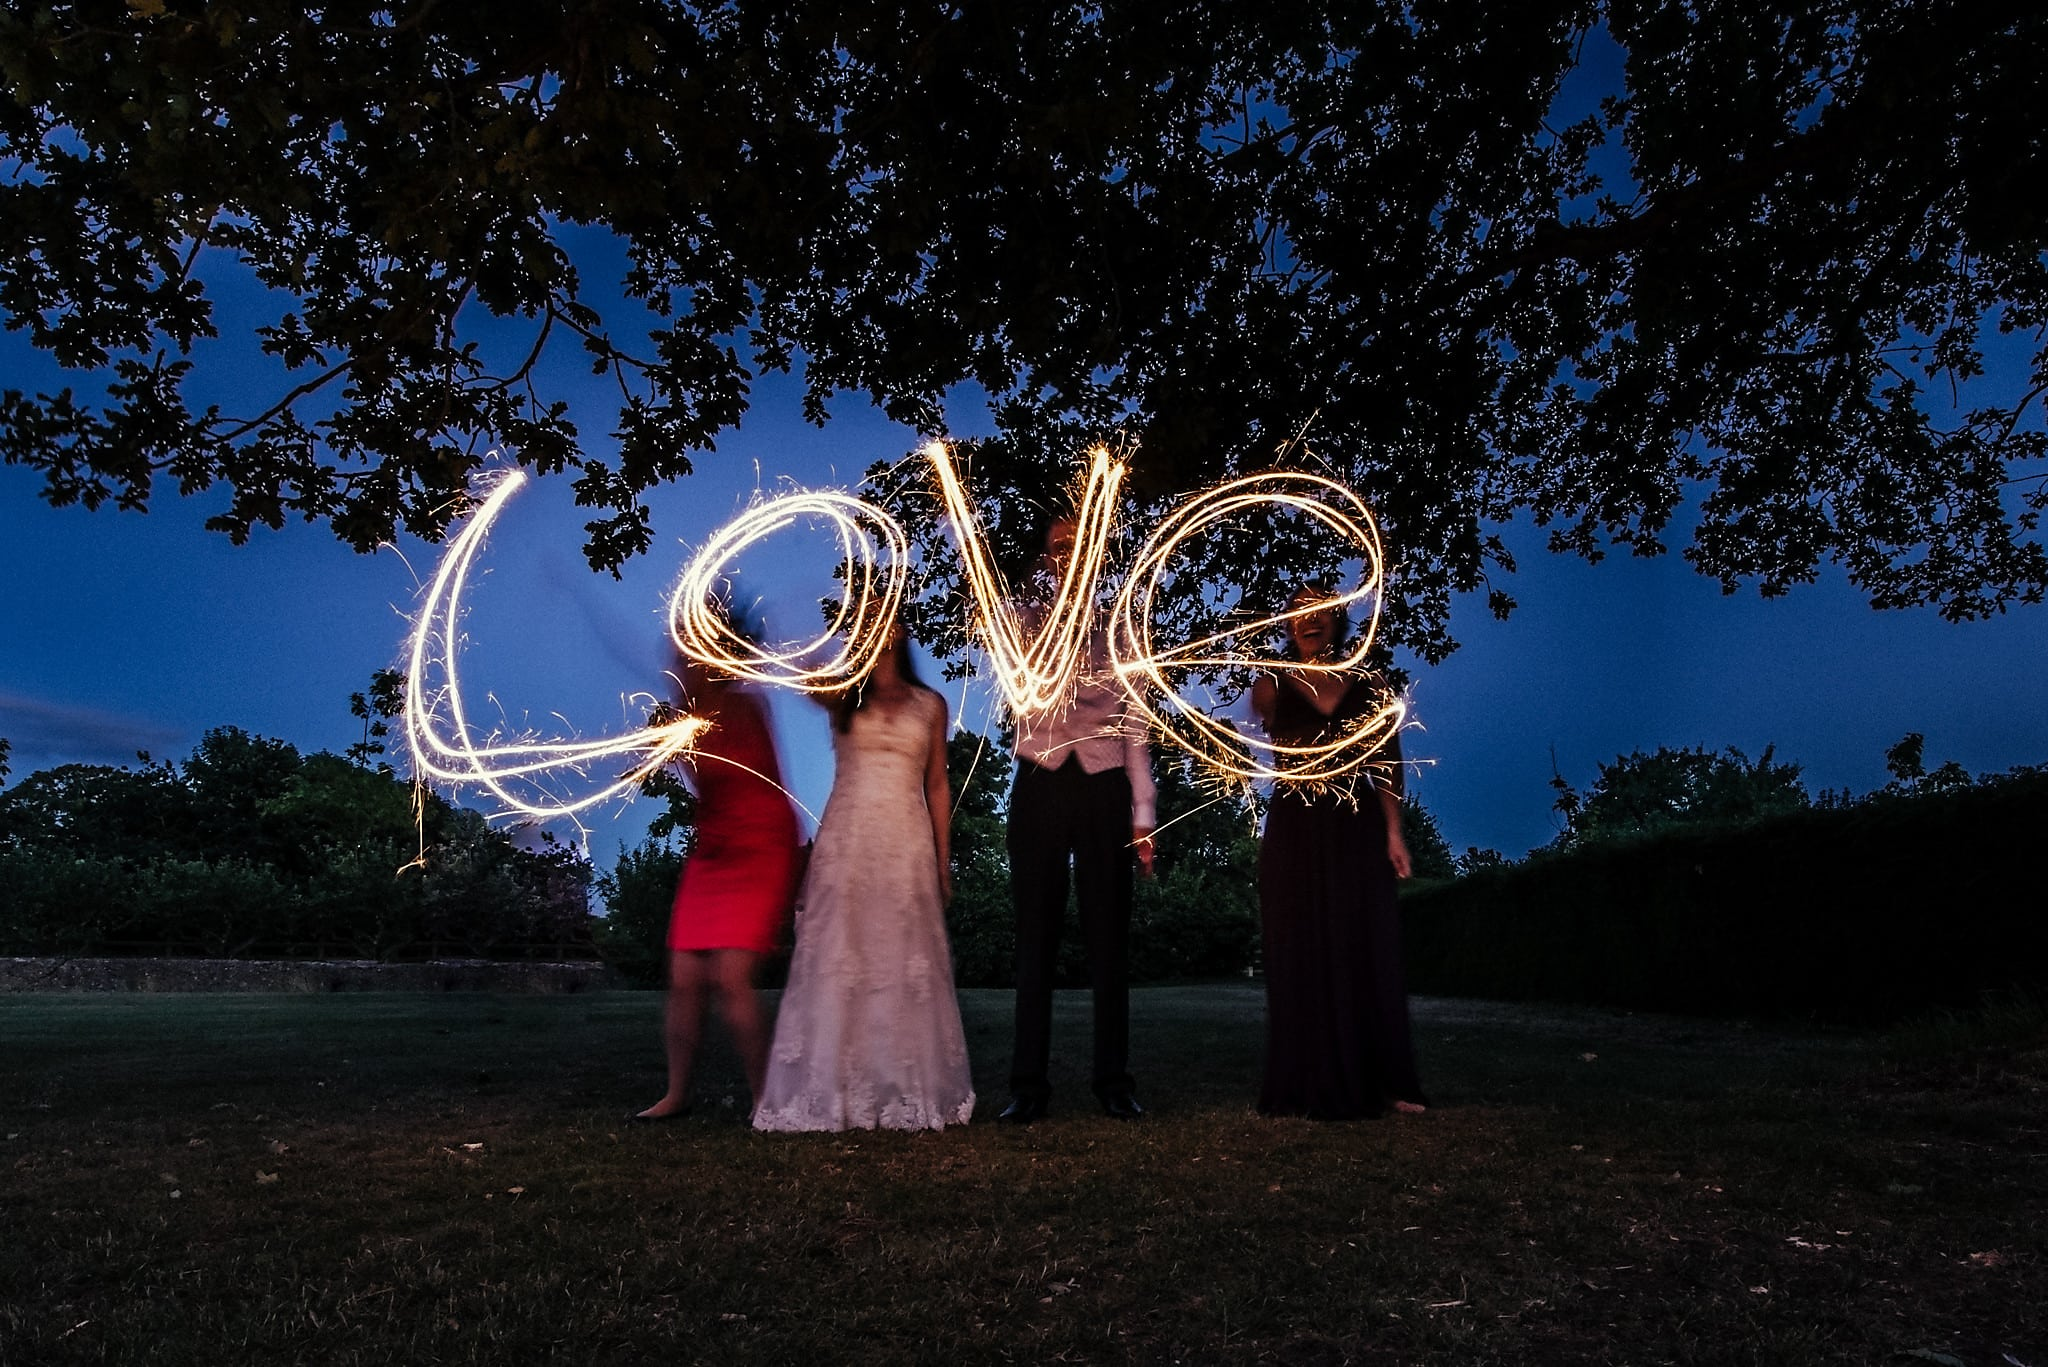 'Love' spelt out with sparklers